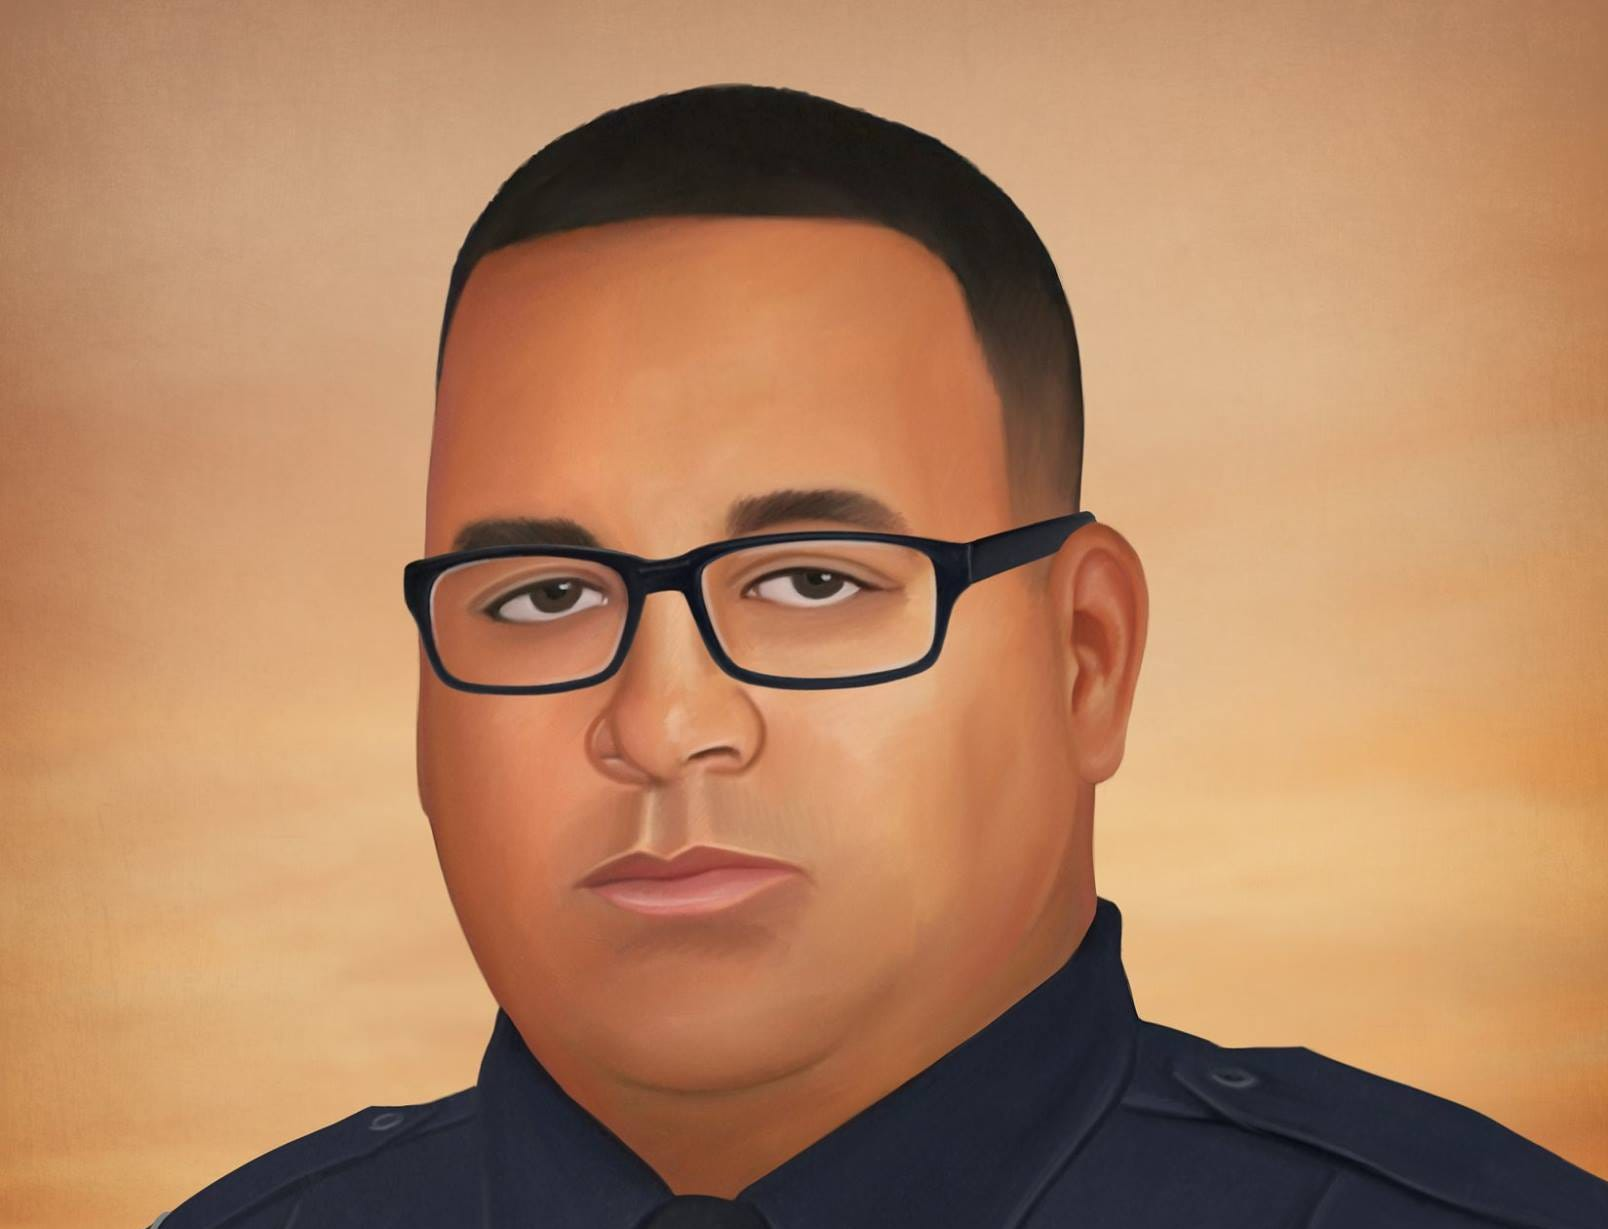 On December 15th, Lumberton (North Carolina) Police Officer Jason Quick had responded to a vehicle accident on Interstate 95. While investigating the crash, Jason was fatally struck by another vehicle. Painting by Jonny Castro Art